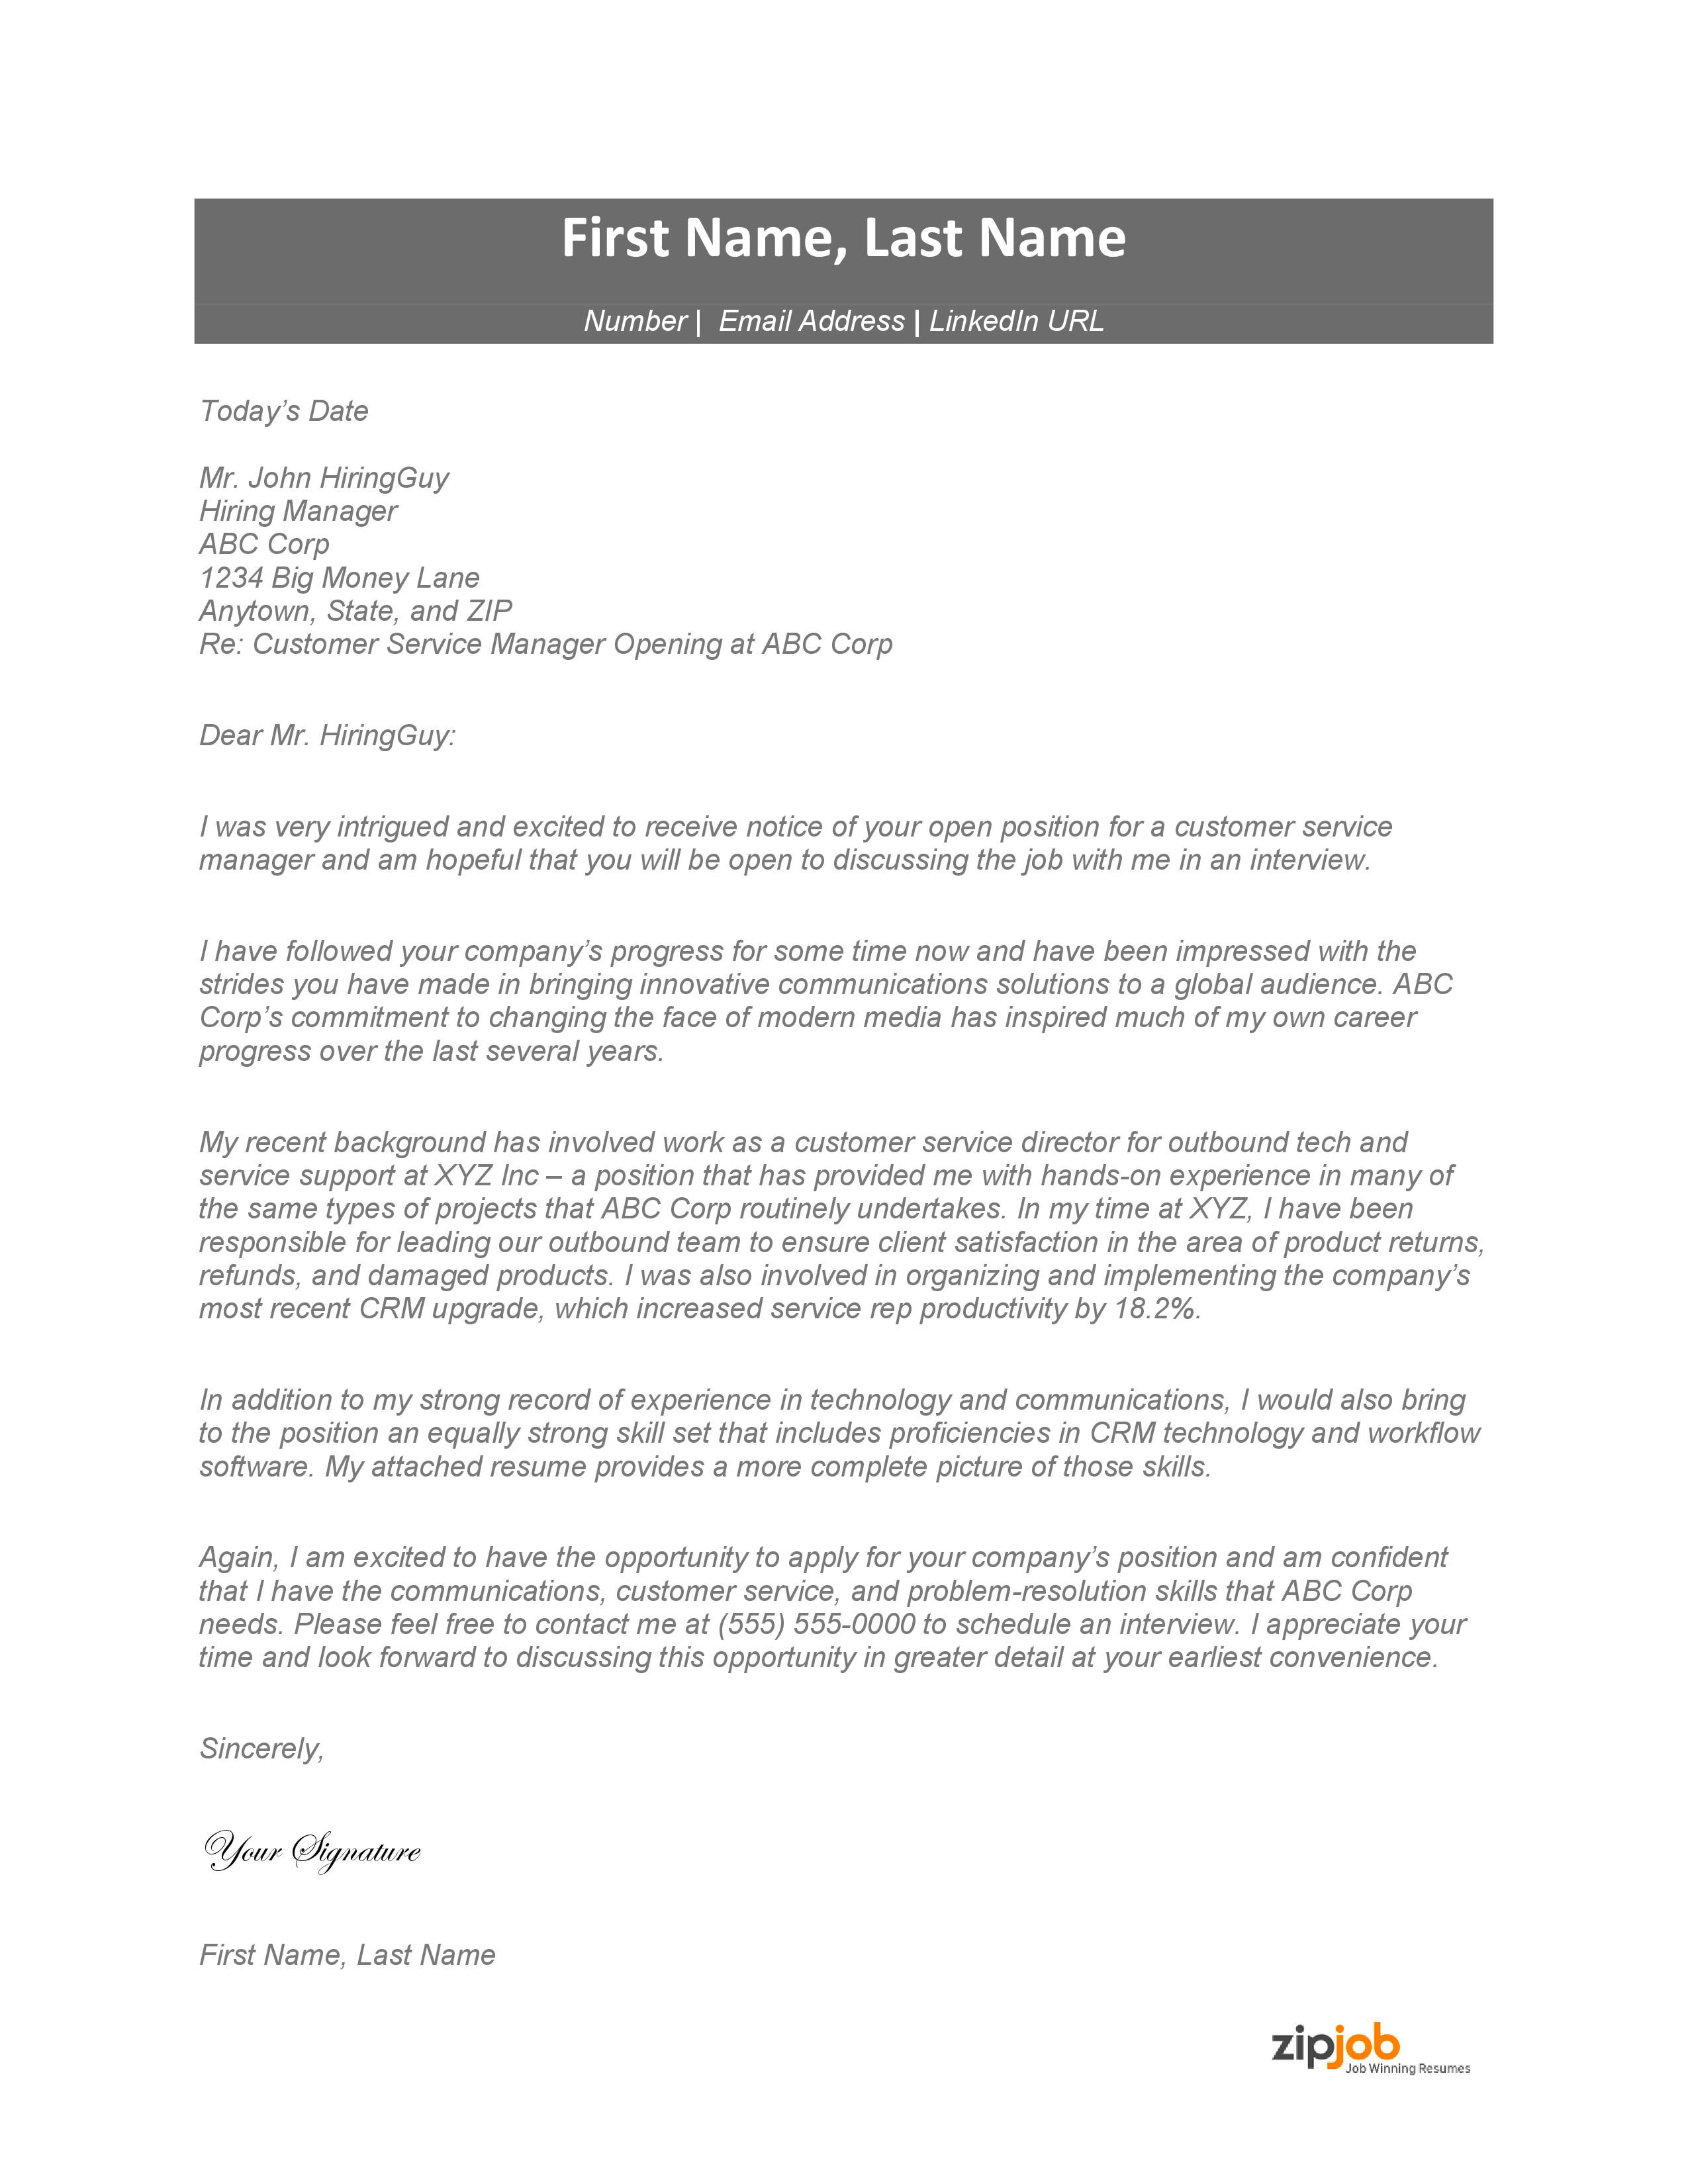 Here Is What A Good Cover Letter Looks Like In 2021 Zipjob